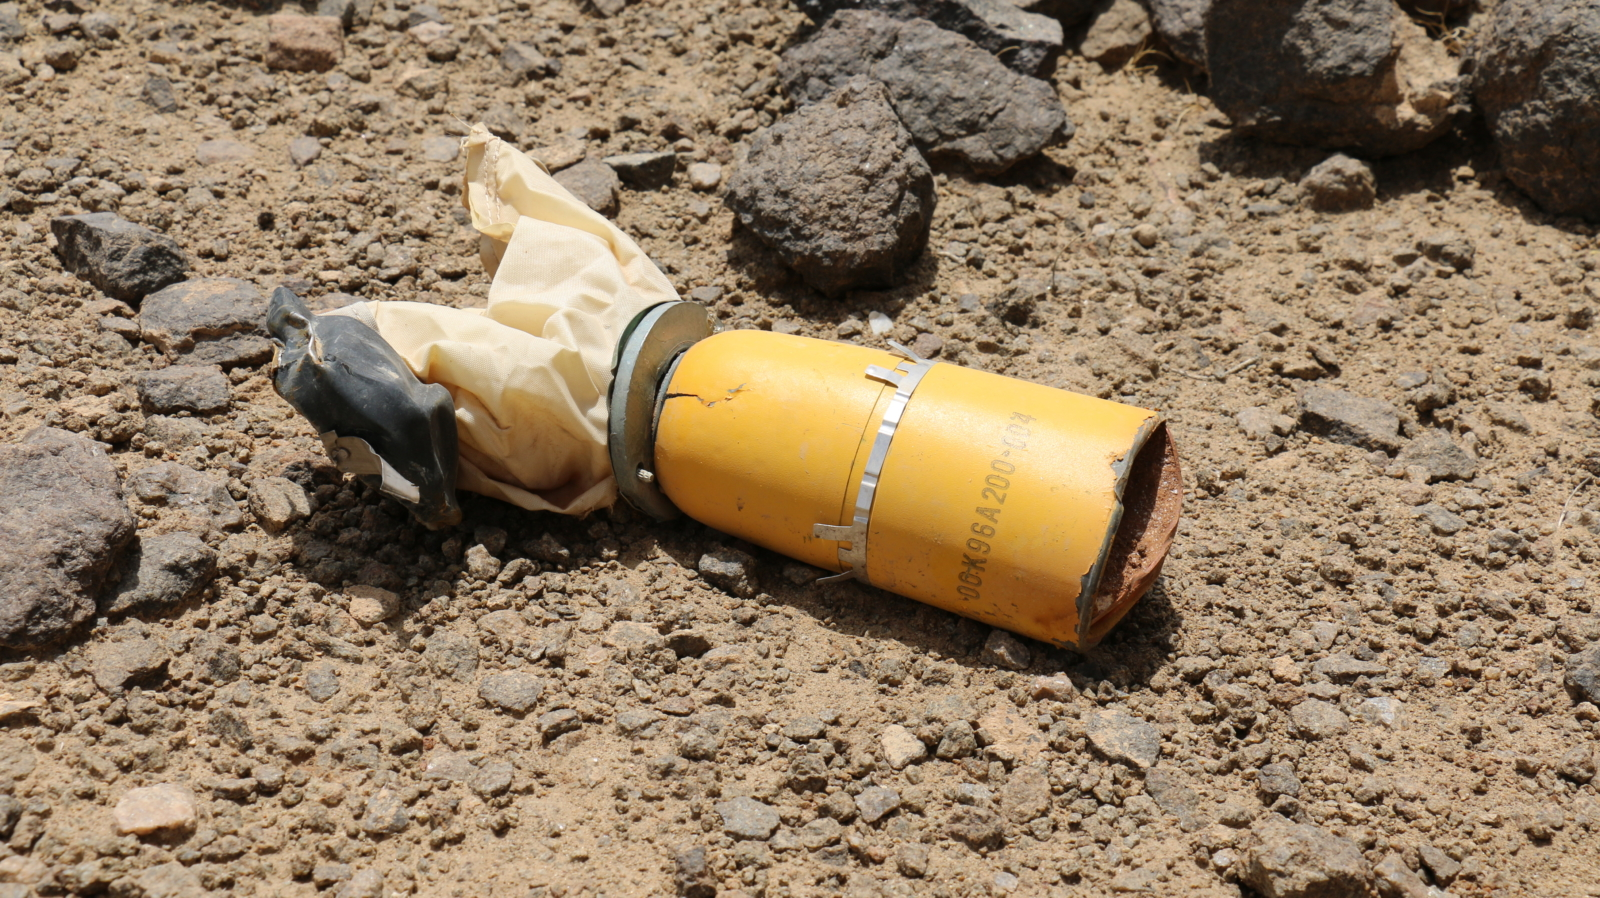 Yemen: Saudi Arabia-led coalition uses banned Brazilian cluster munitions on residential areas